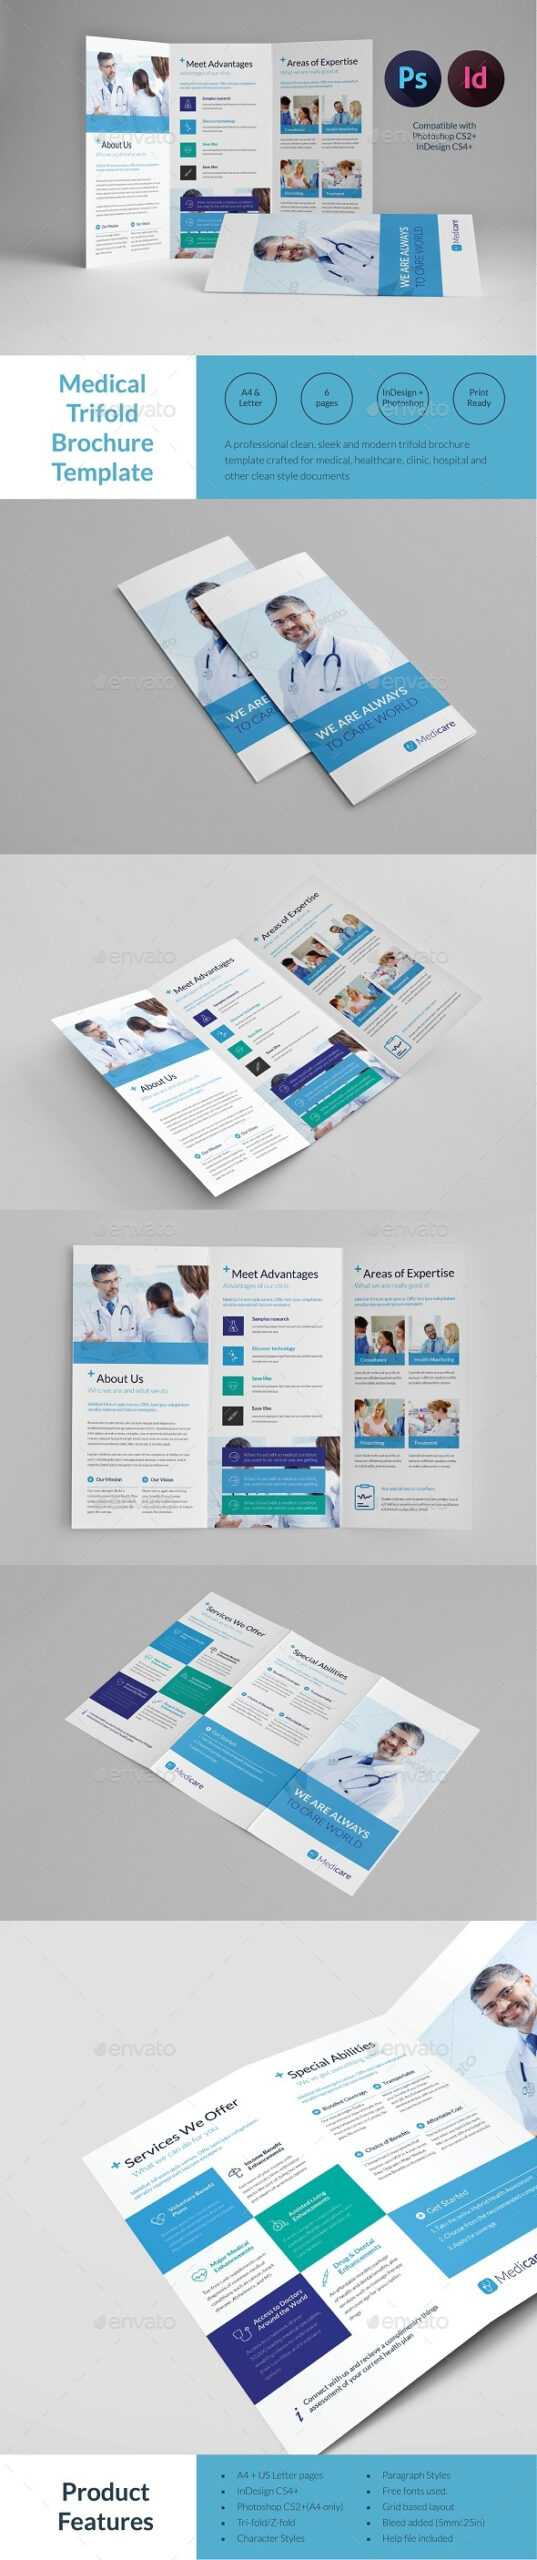 Dental Graphics, Designs & Templates From Graphicriver pertaining to Medical Office Brochure Templates